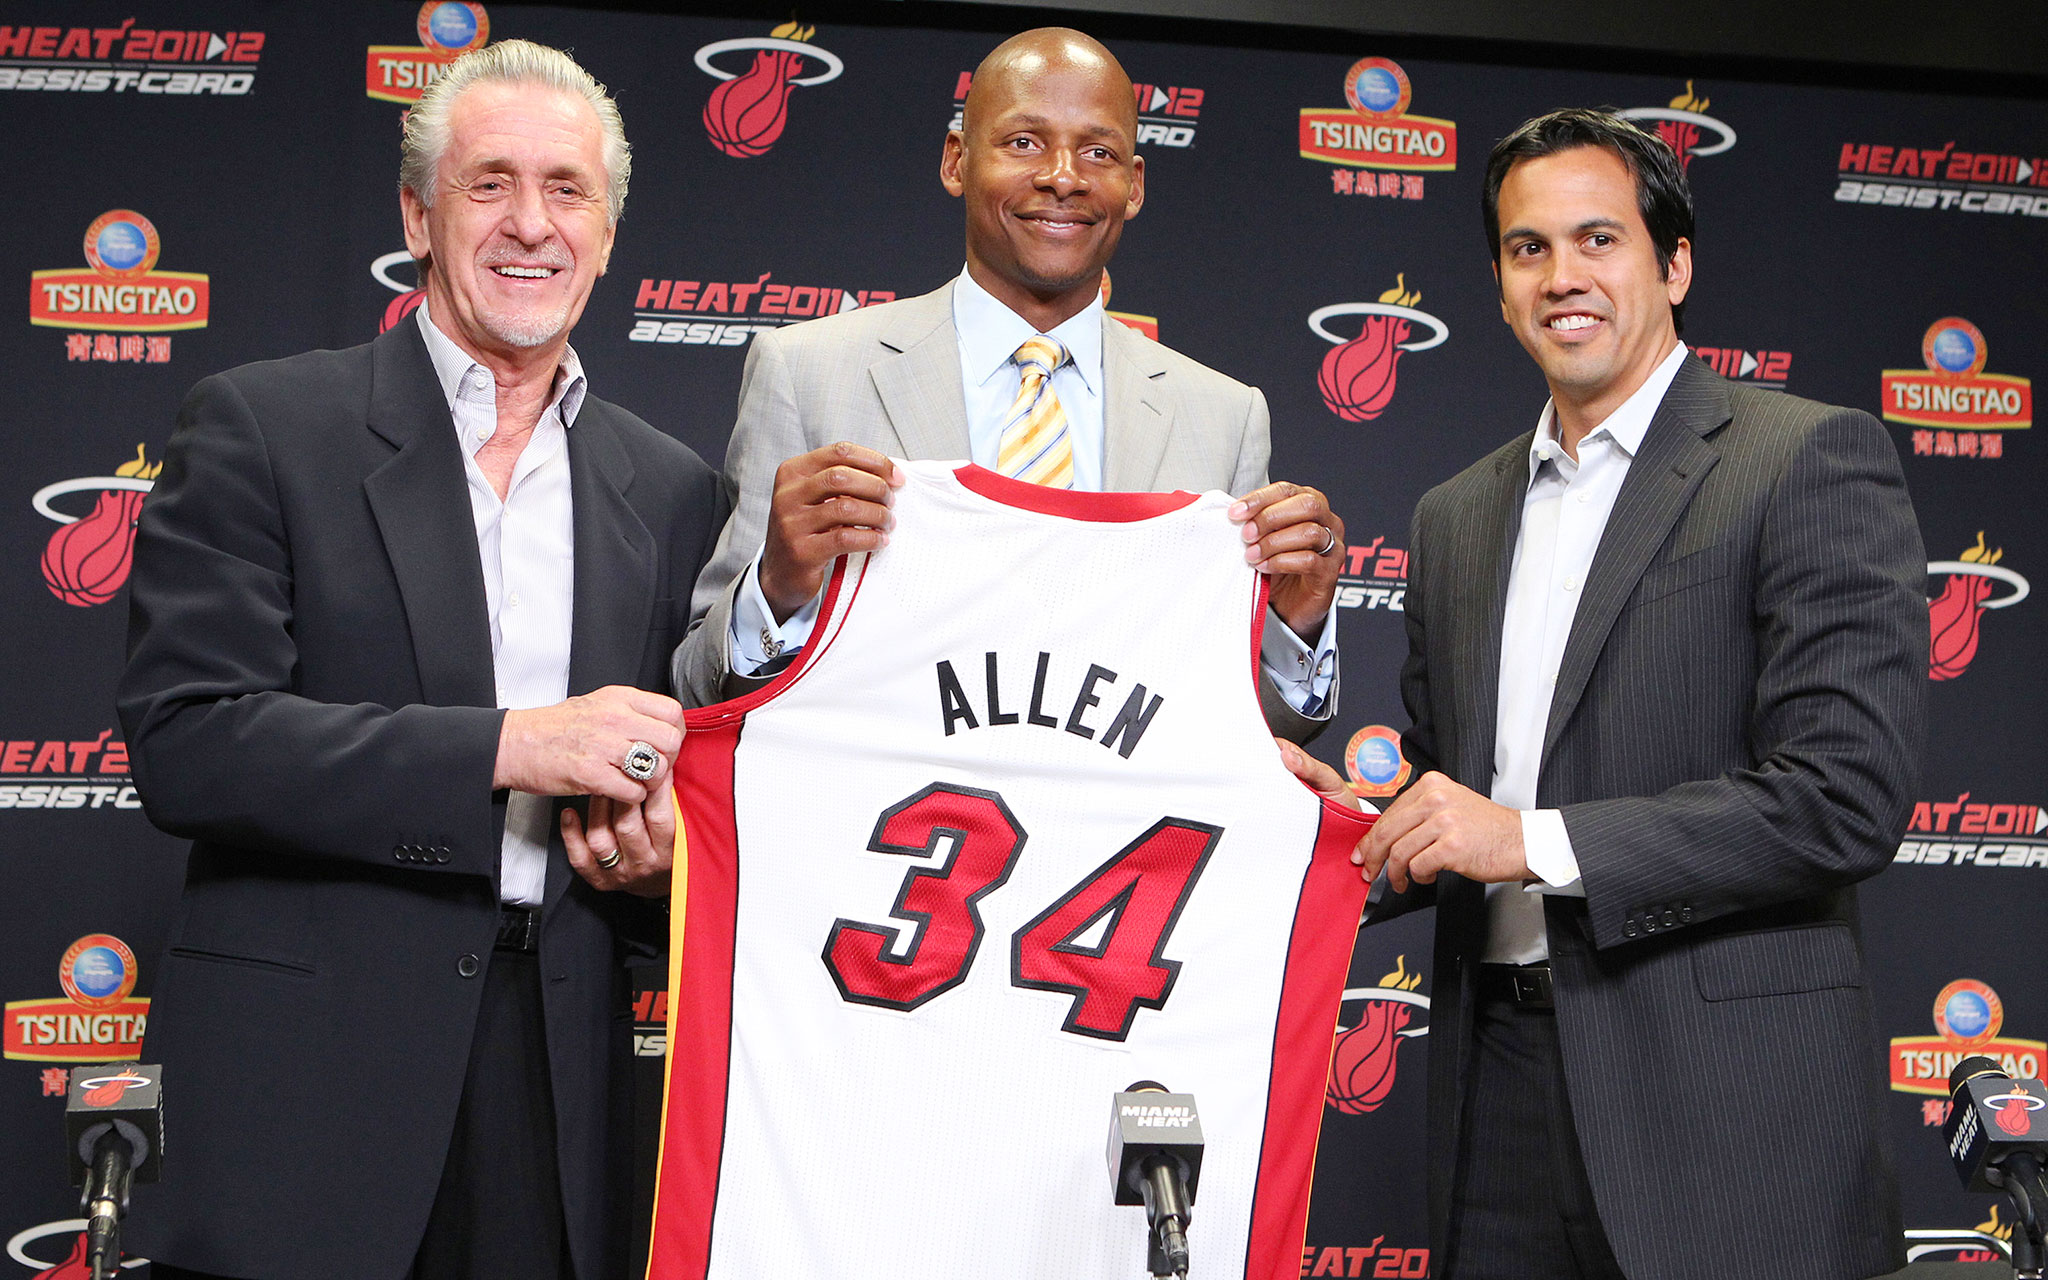 7. Ray Allen Signs With Heat